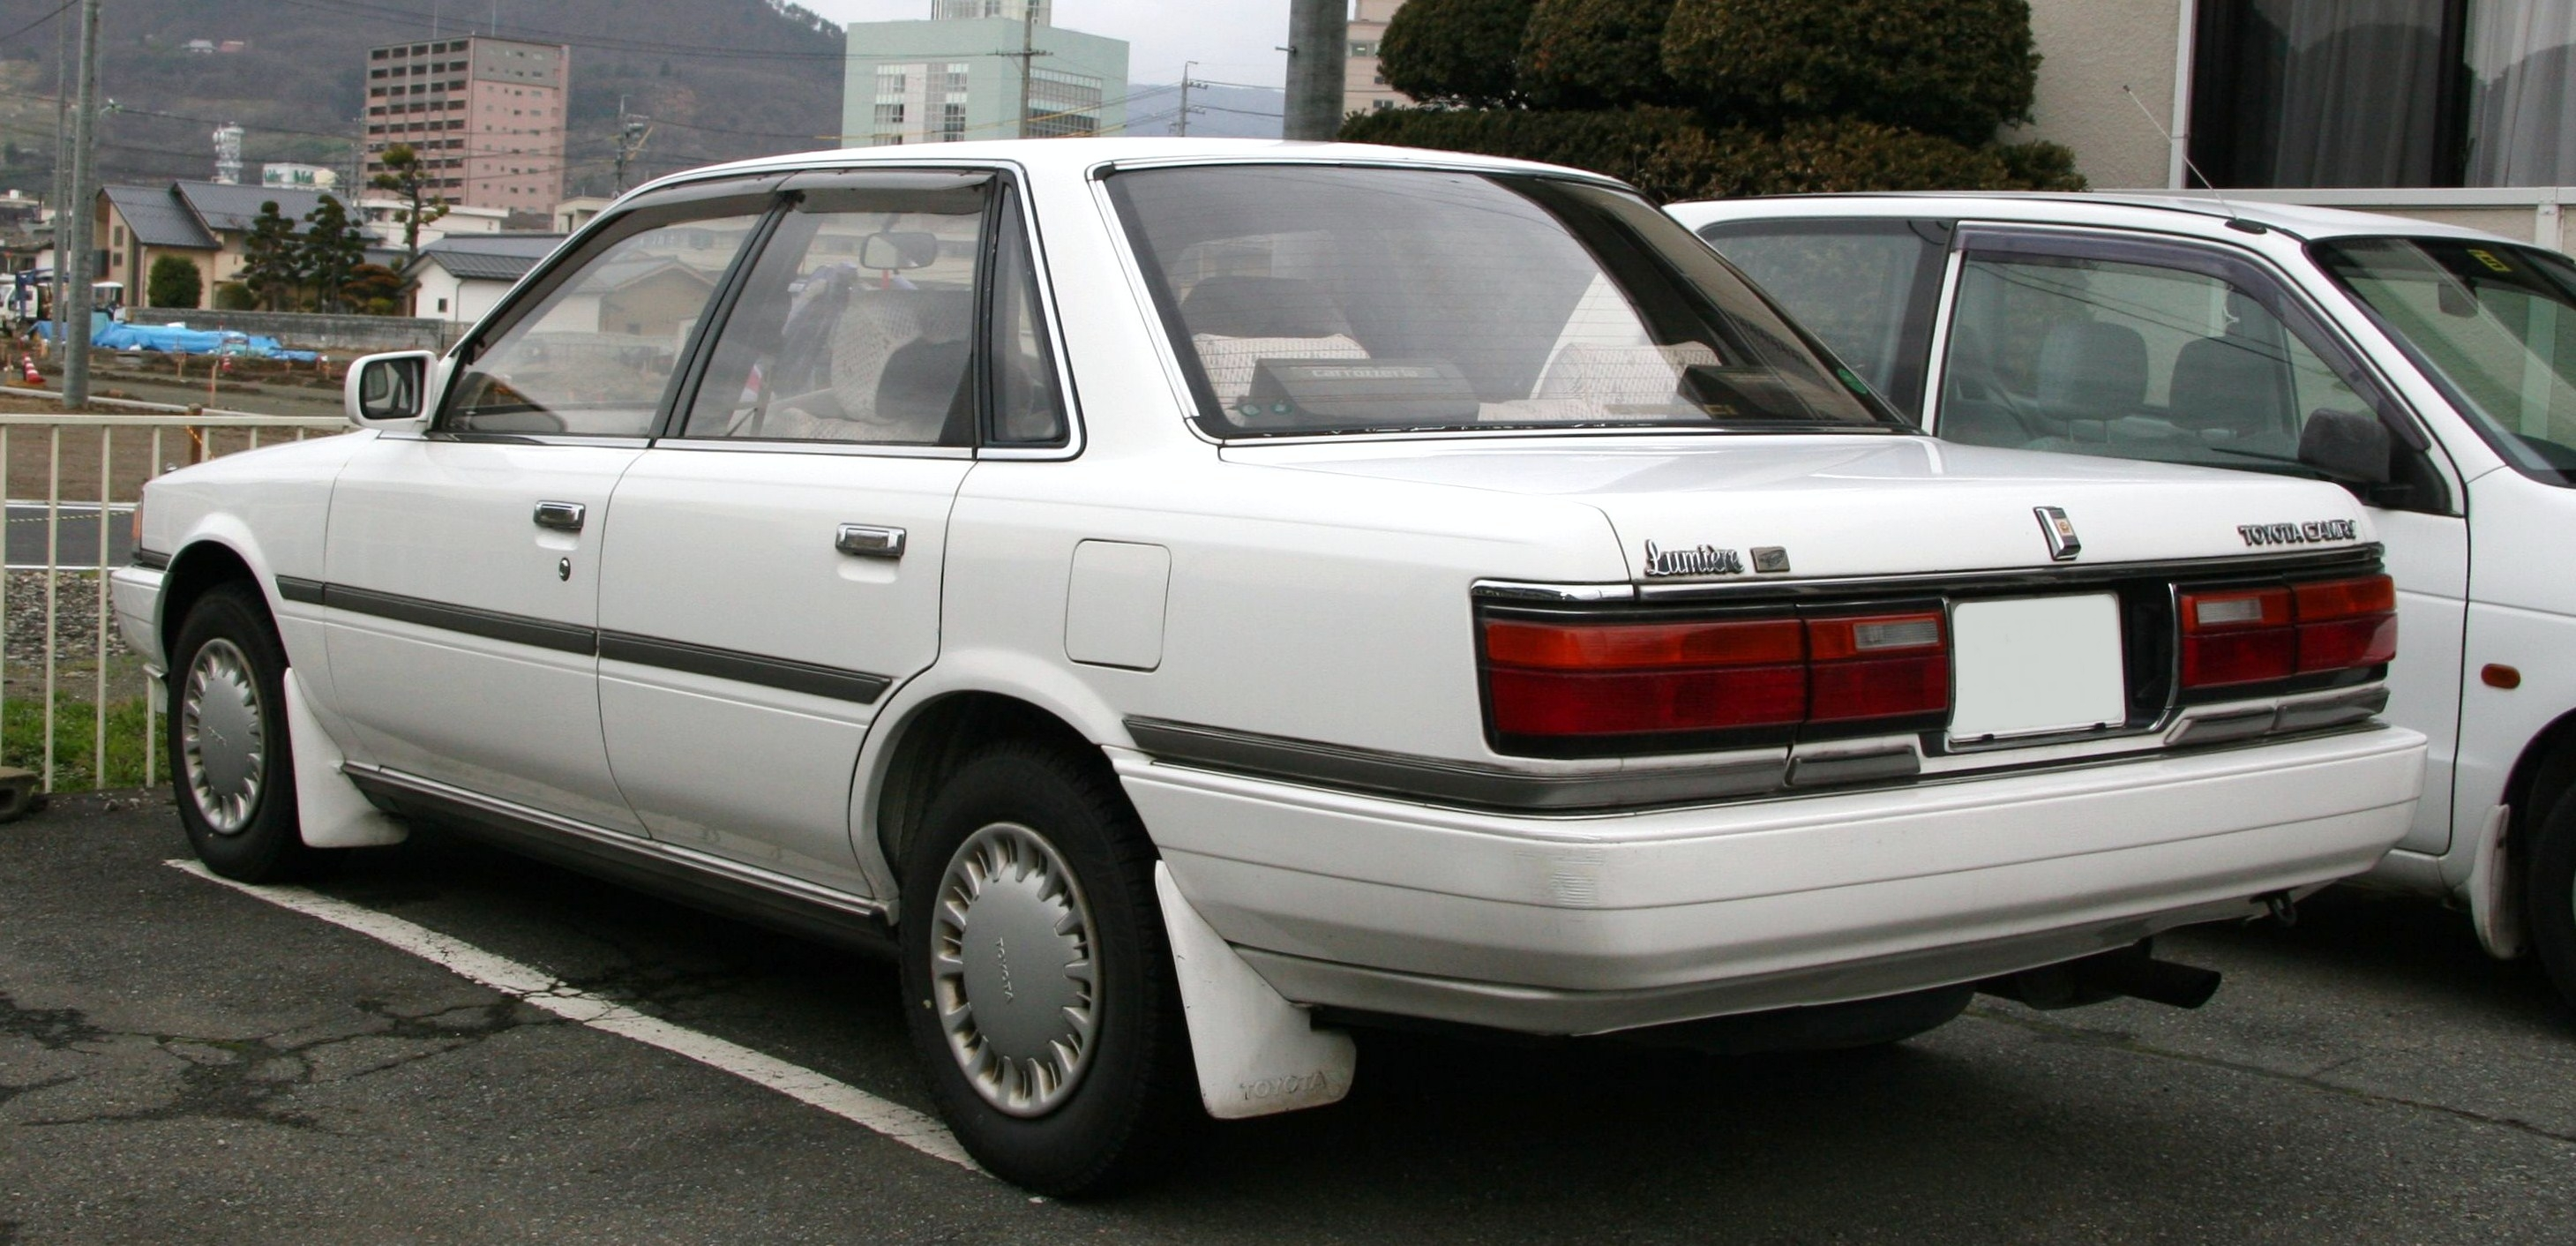 Toyota Scepter 1992 - 1996 Station wagon 5 door #1